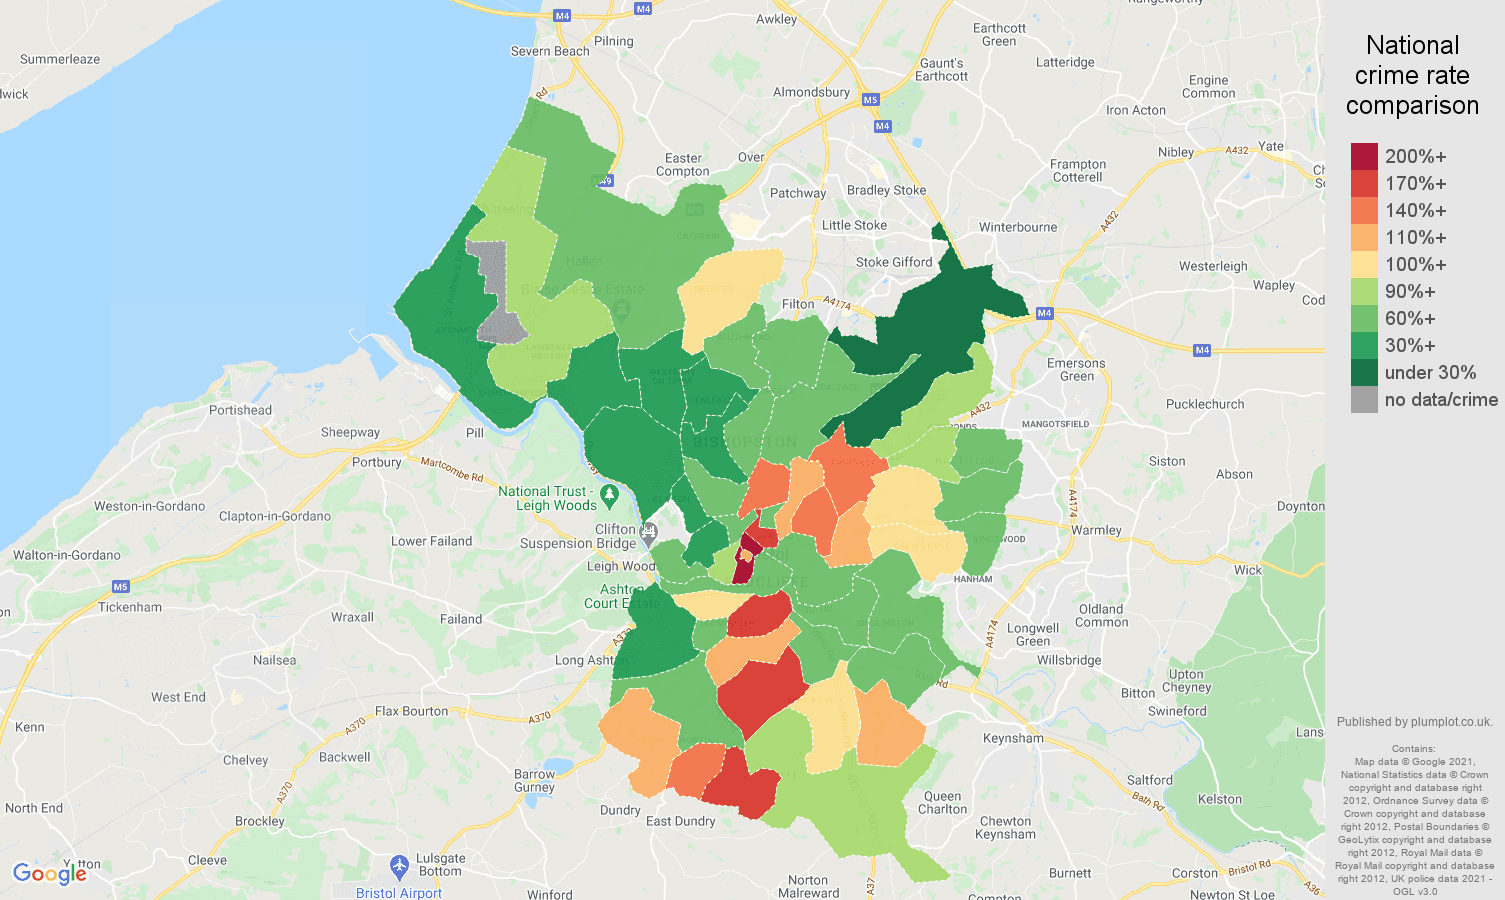 Bristol county antisocial behaviour crime rate comparison map